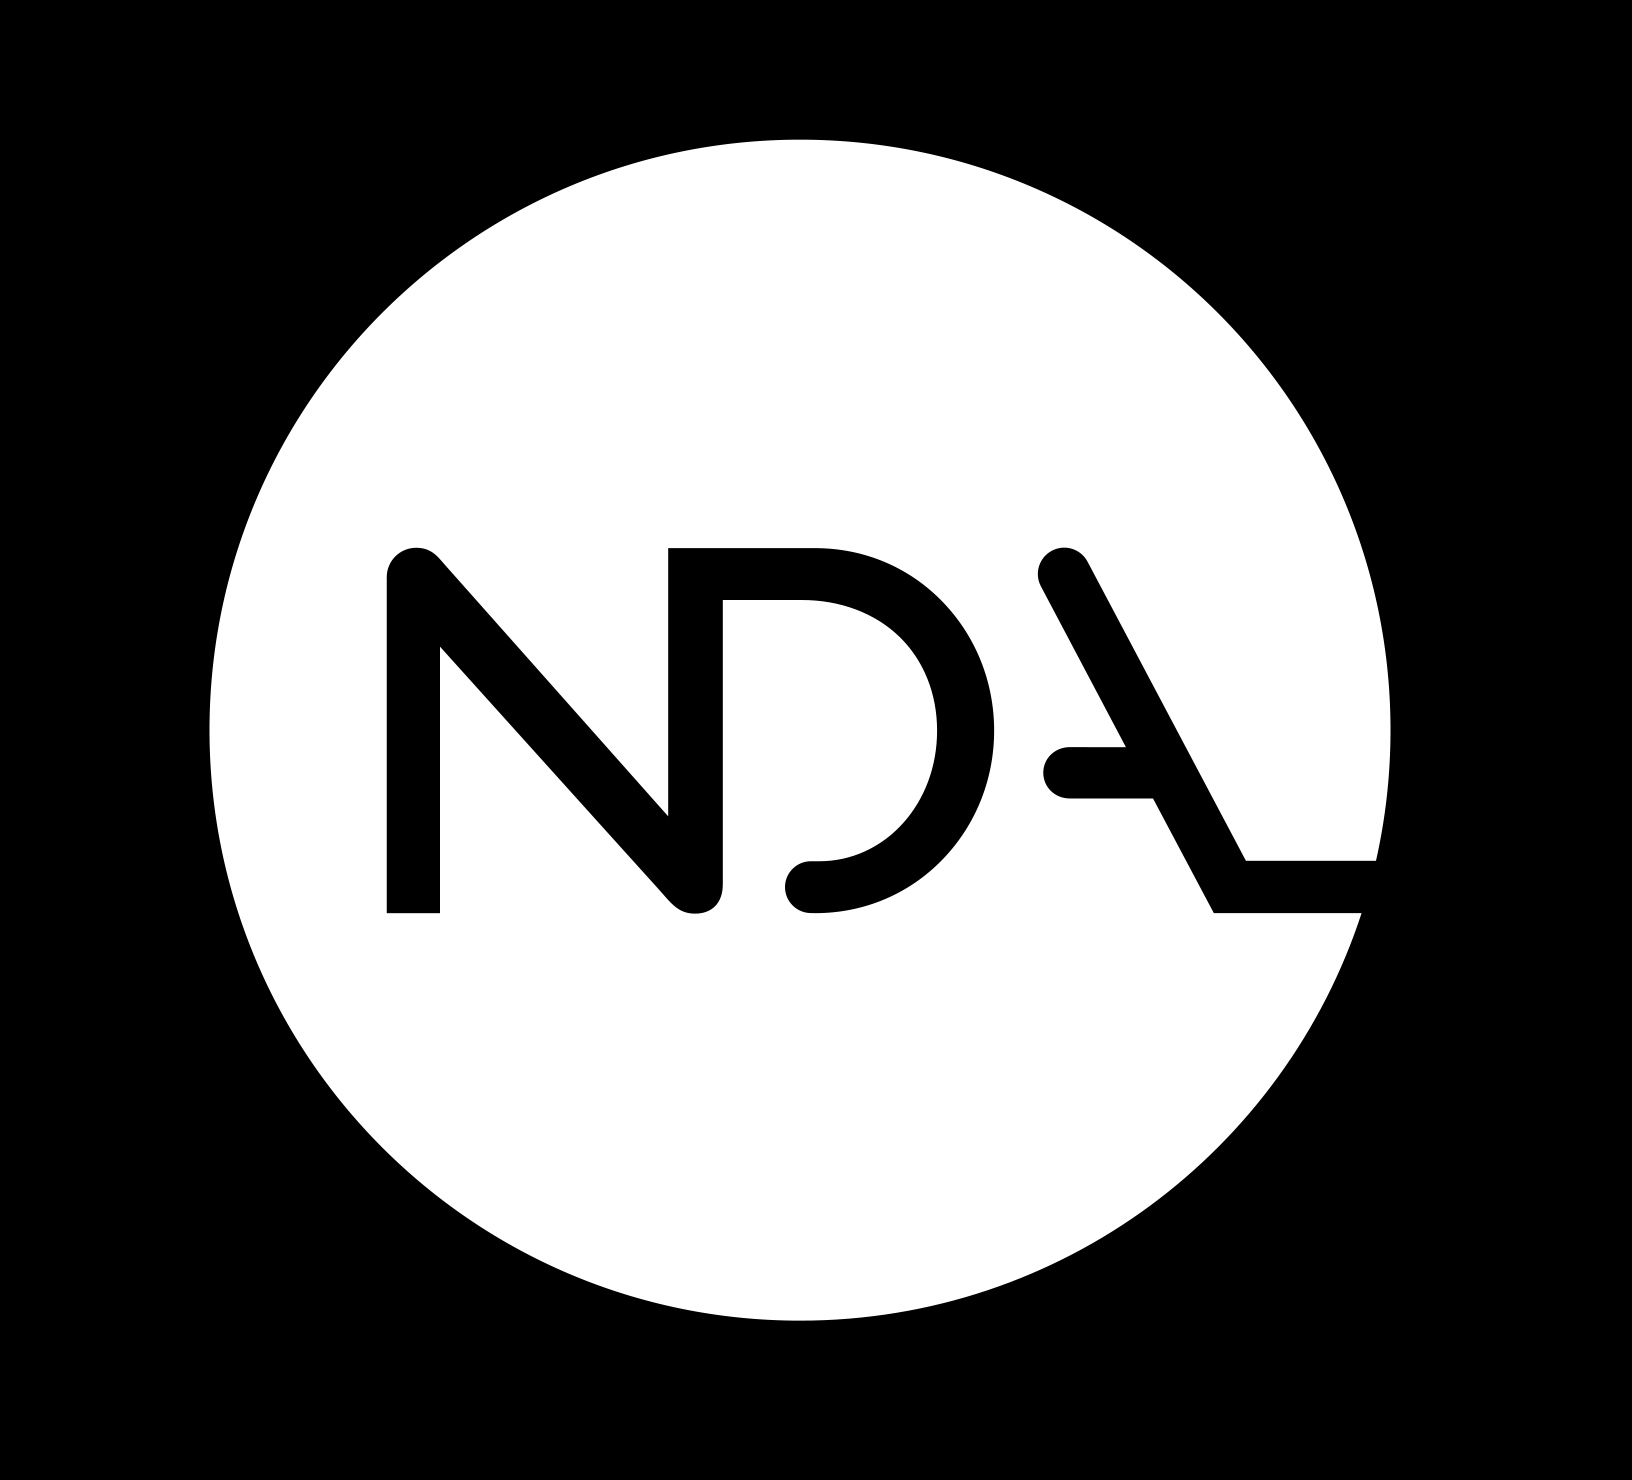 NDA final logo BW